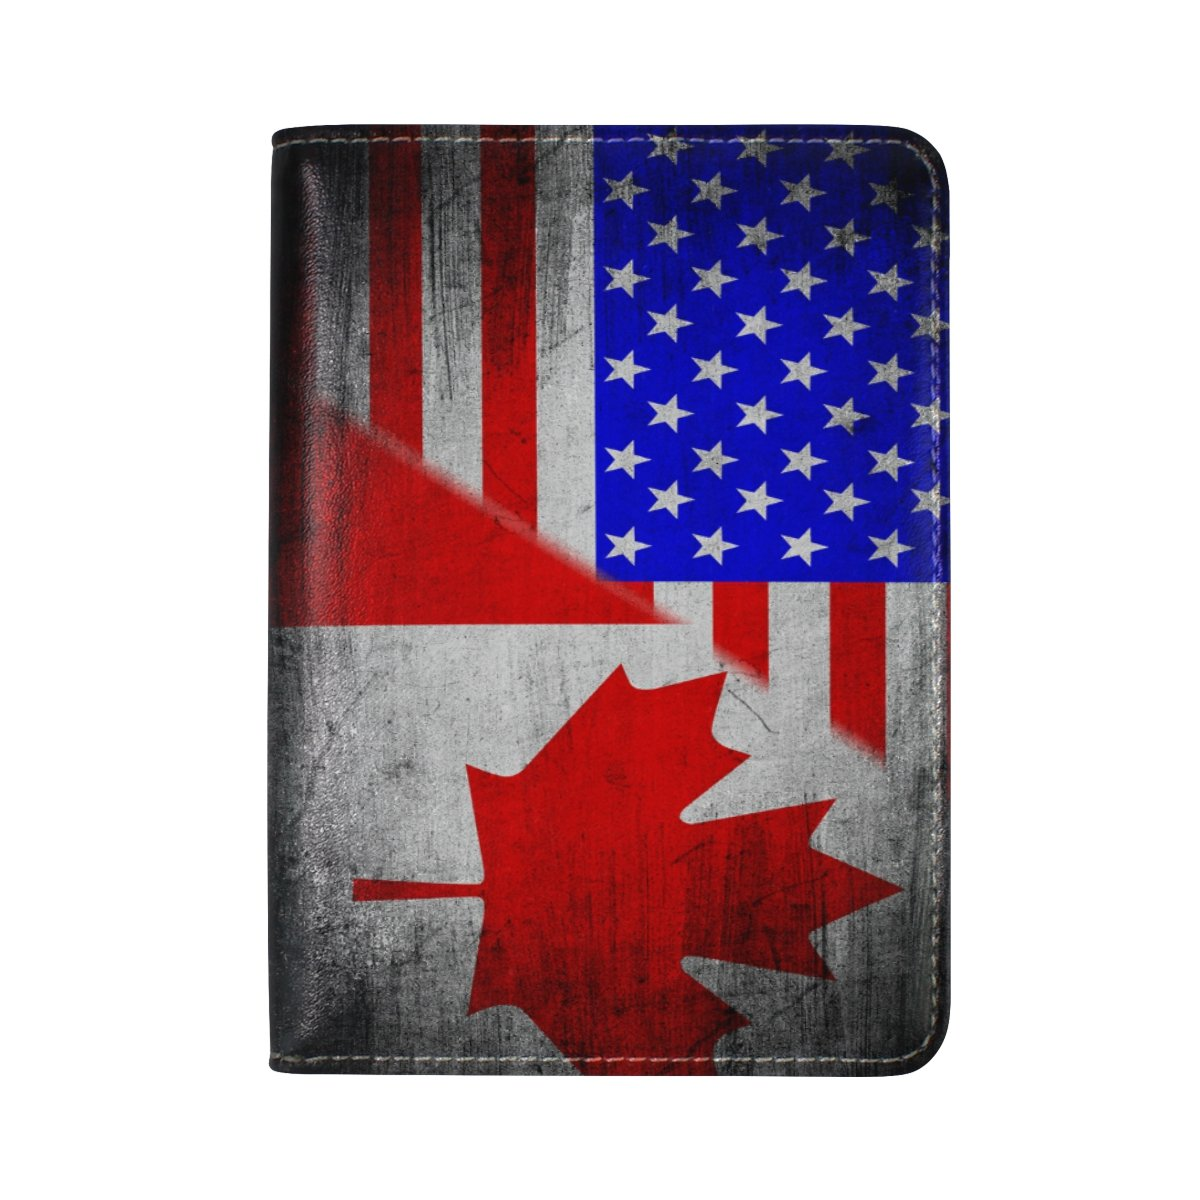 America Flag Canada Flag Vintage Travel Passport Covers Holder Case Protector